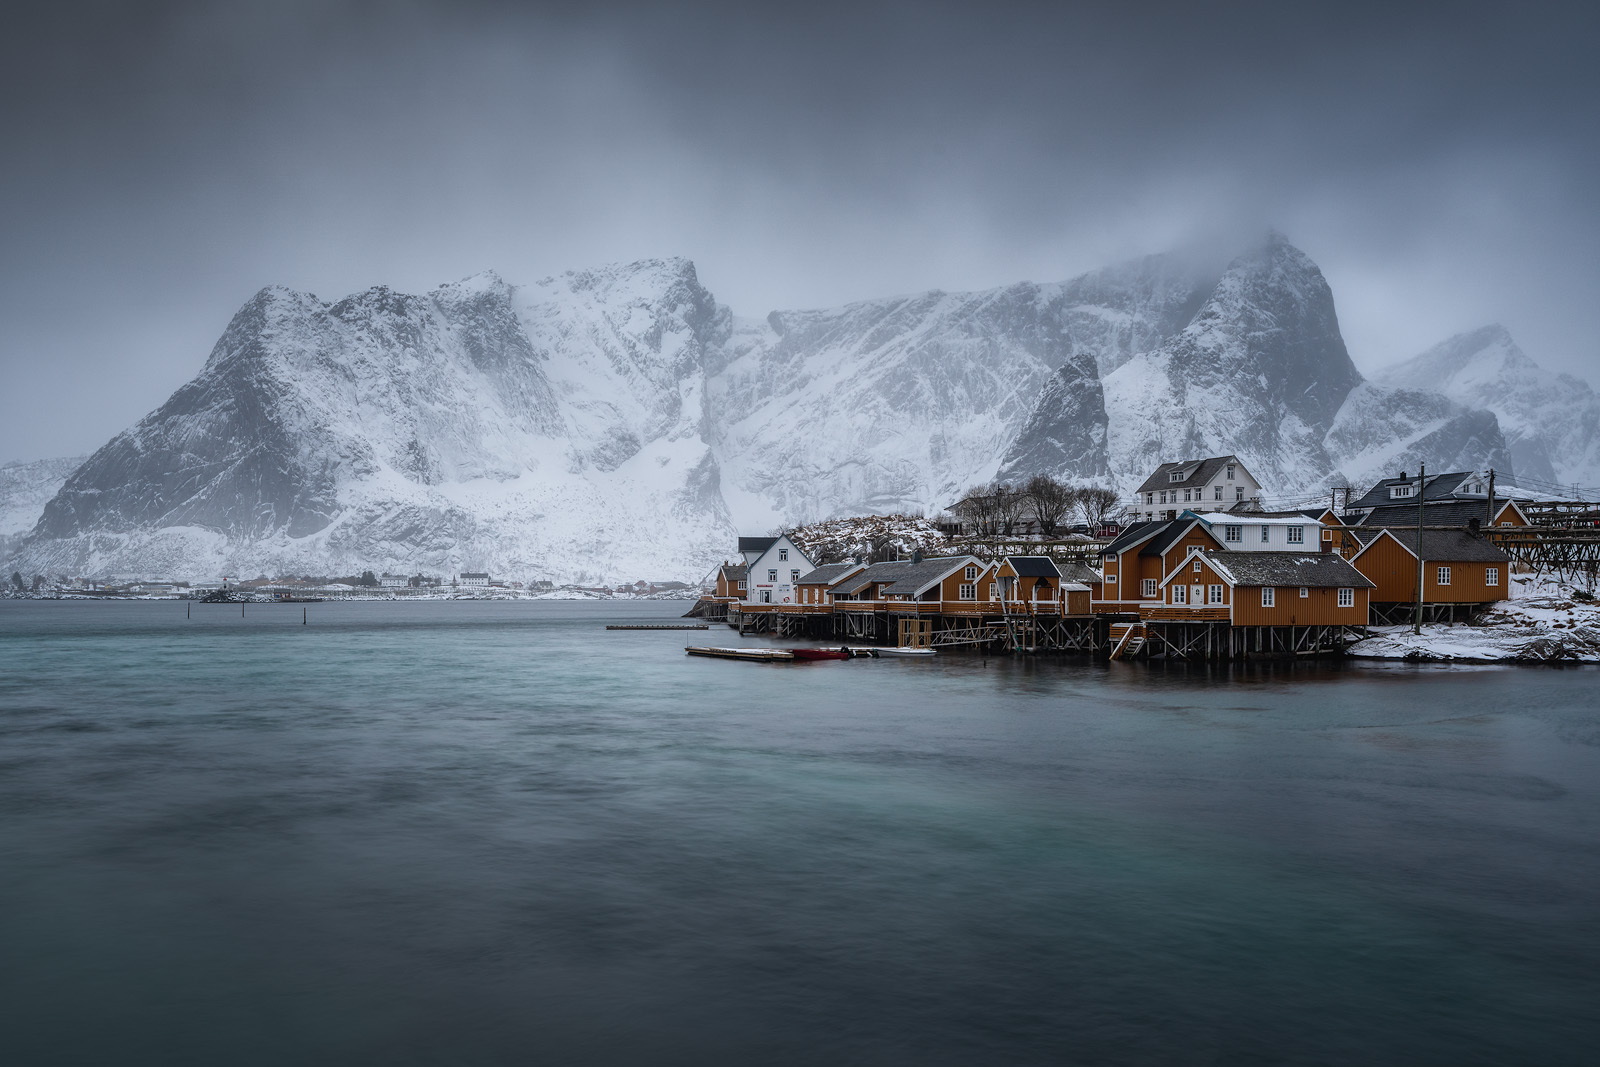 Sakrisøy is one of many iconic islands found throughout the majestic Lofoten Islands, Norway.